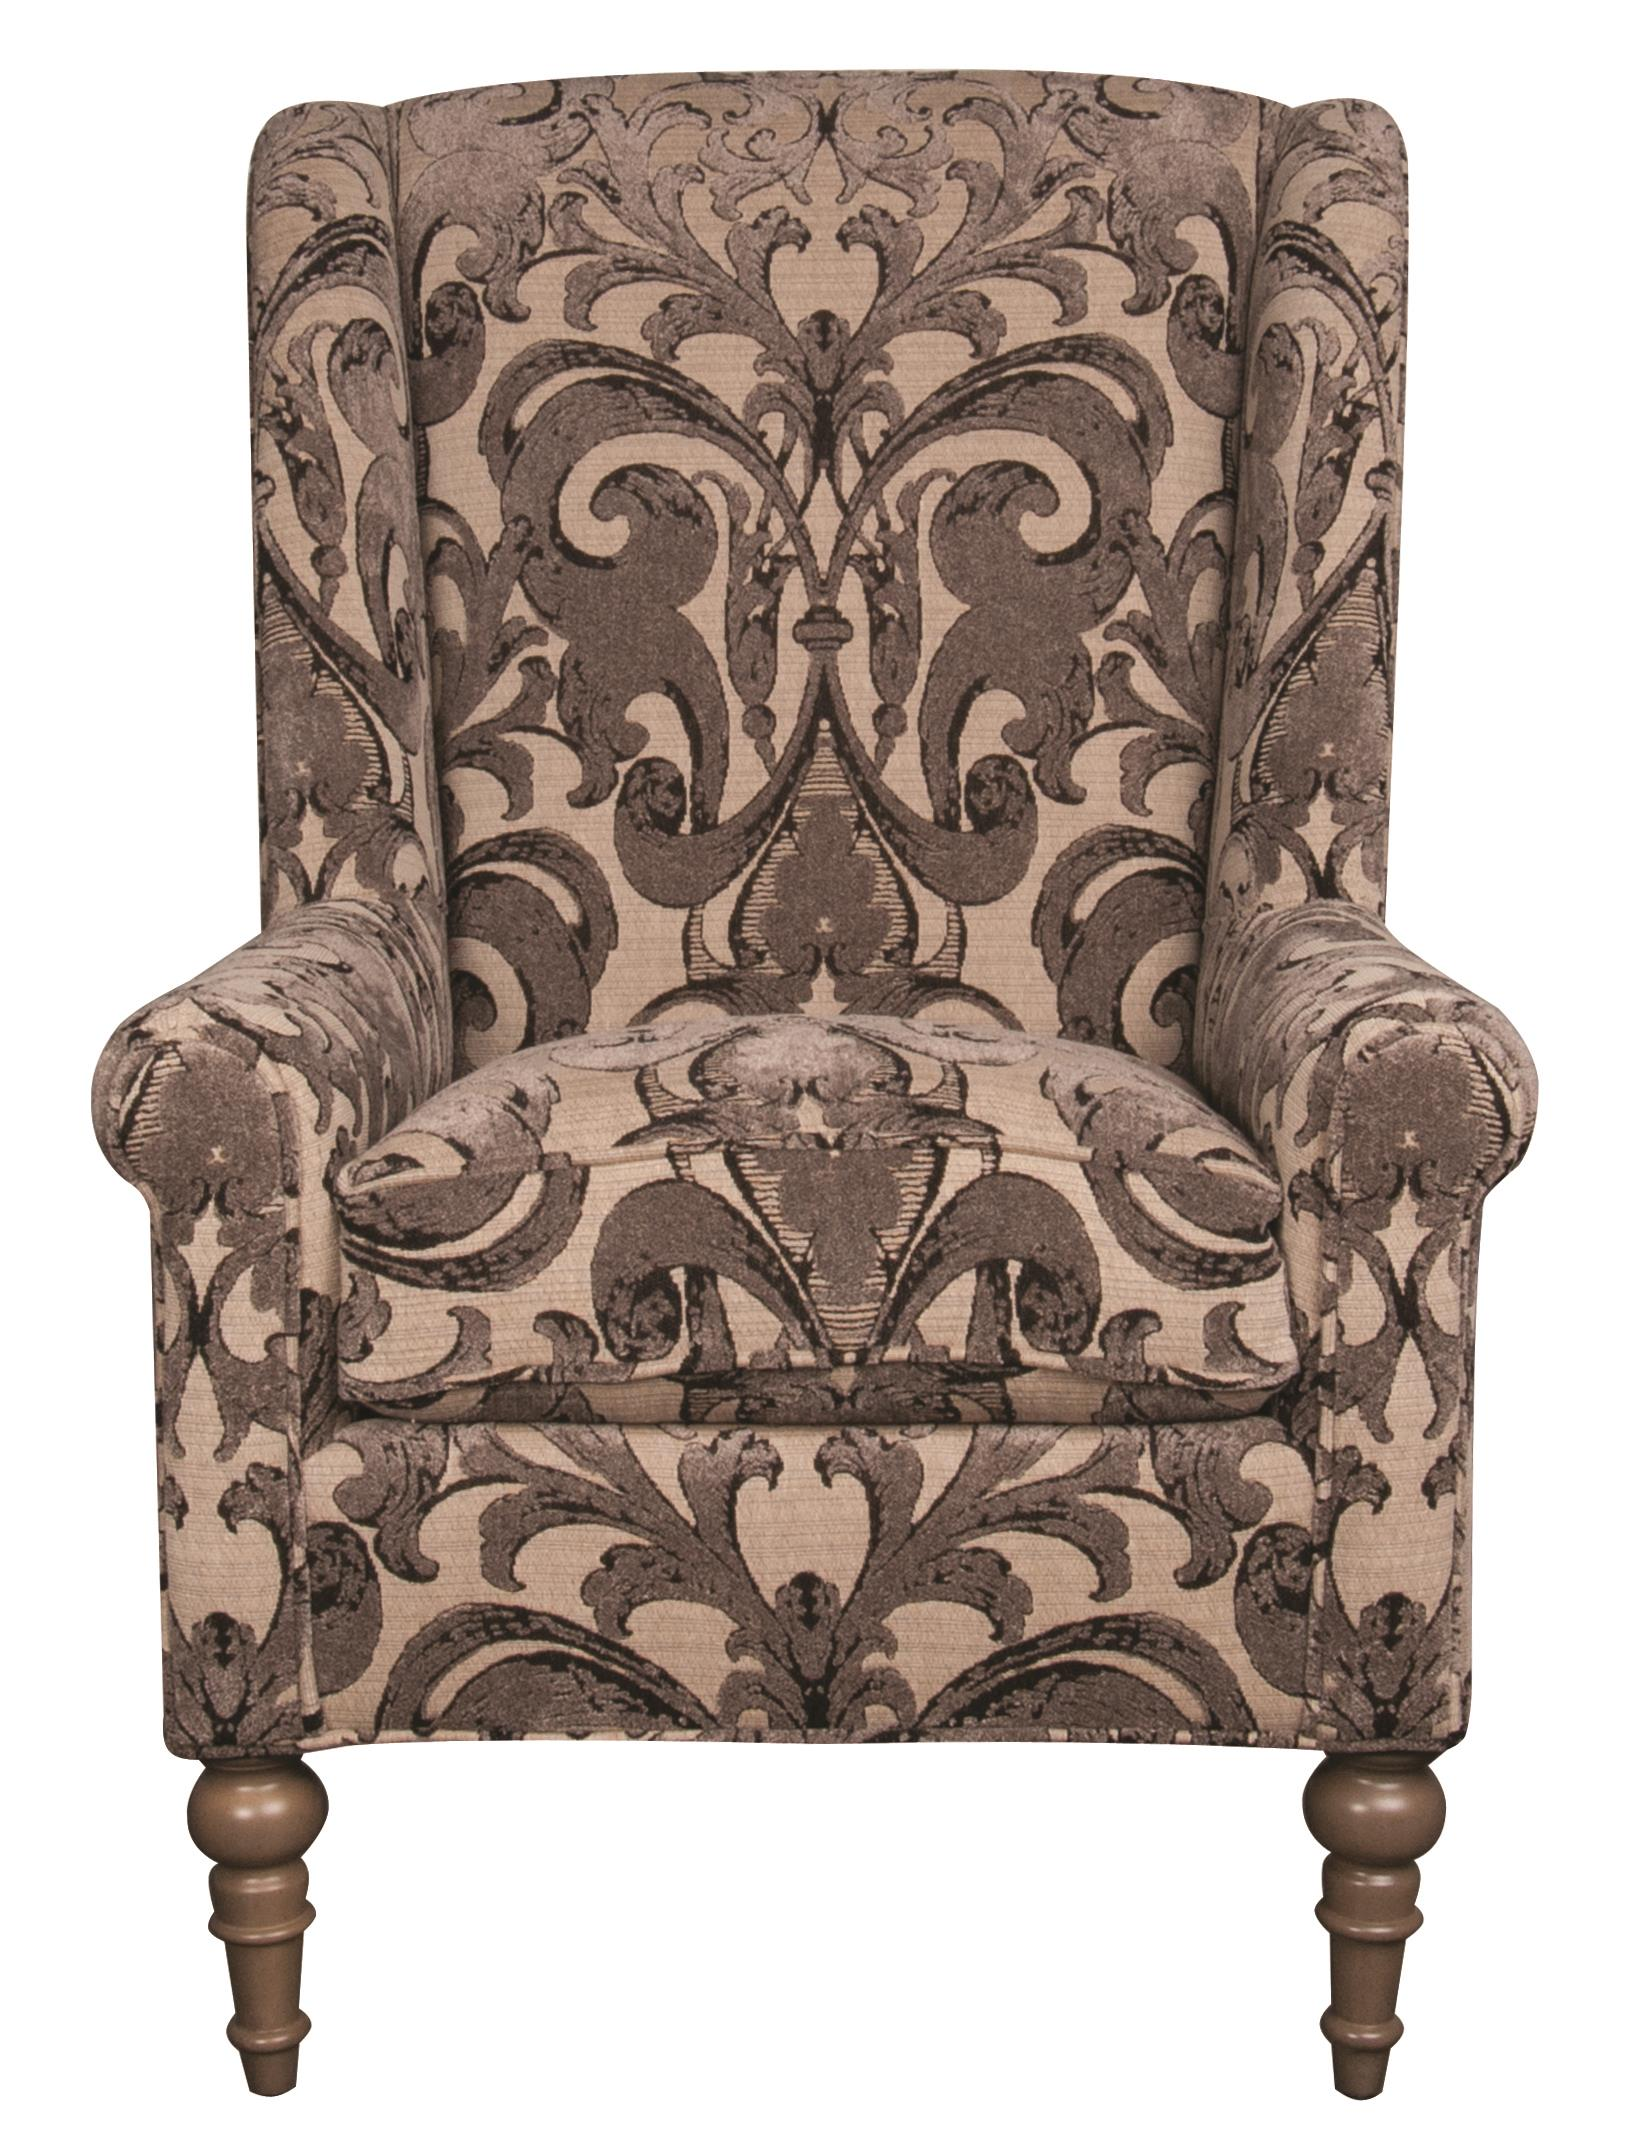 Morris Home Furnishings Humphrey Humphrey Wing Chair - Item Number: 195725894